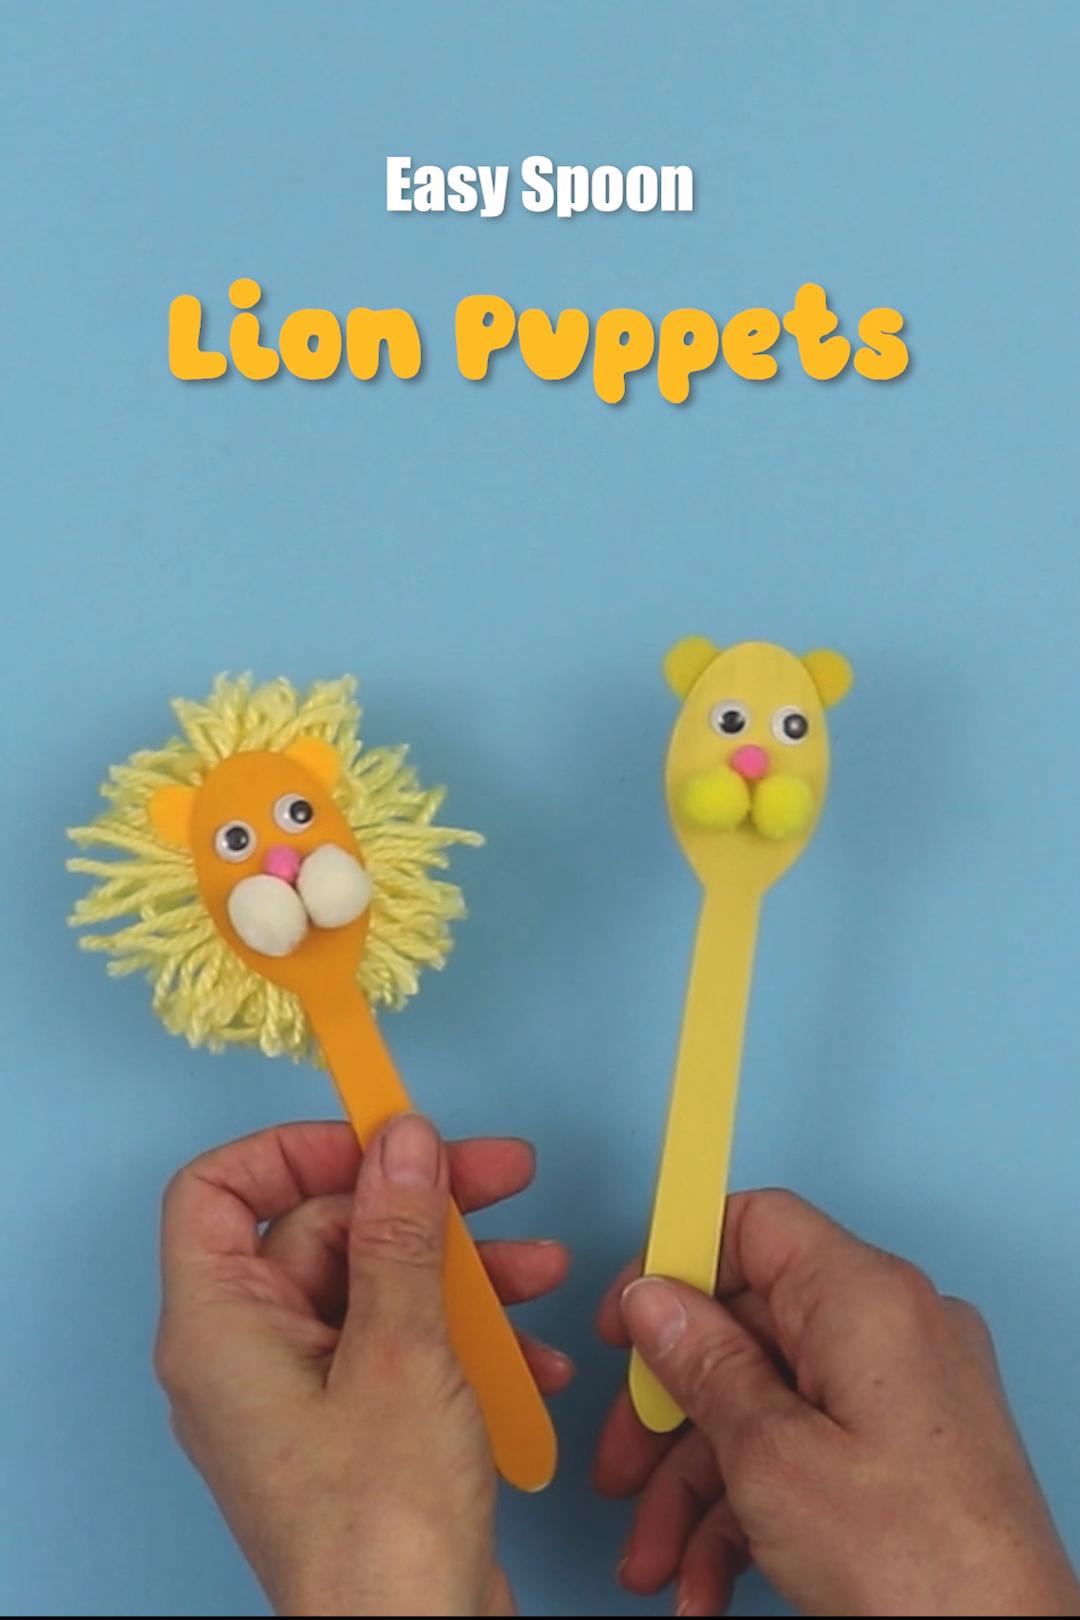 Easy spoon puppet lion craft for kids fith a fluffy yarn mane. This makes a fun DIY toy, or a Lion King themed craft kids will enjoy making and then incorporating into play #lion #lionking #lioncraft #lioness #spoonpuppet #spooncraft #yarn #puppetcraft #kidsactivity #creativefun #kidscrafts #puppet #thecrafttrain